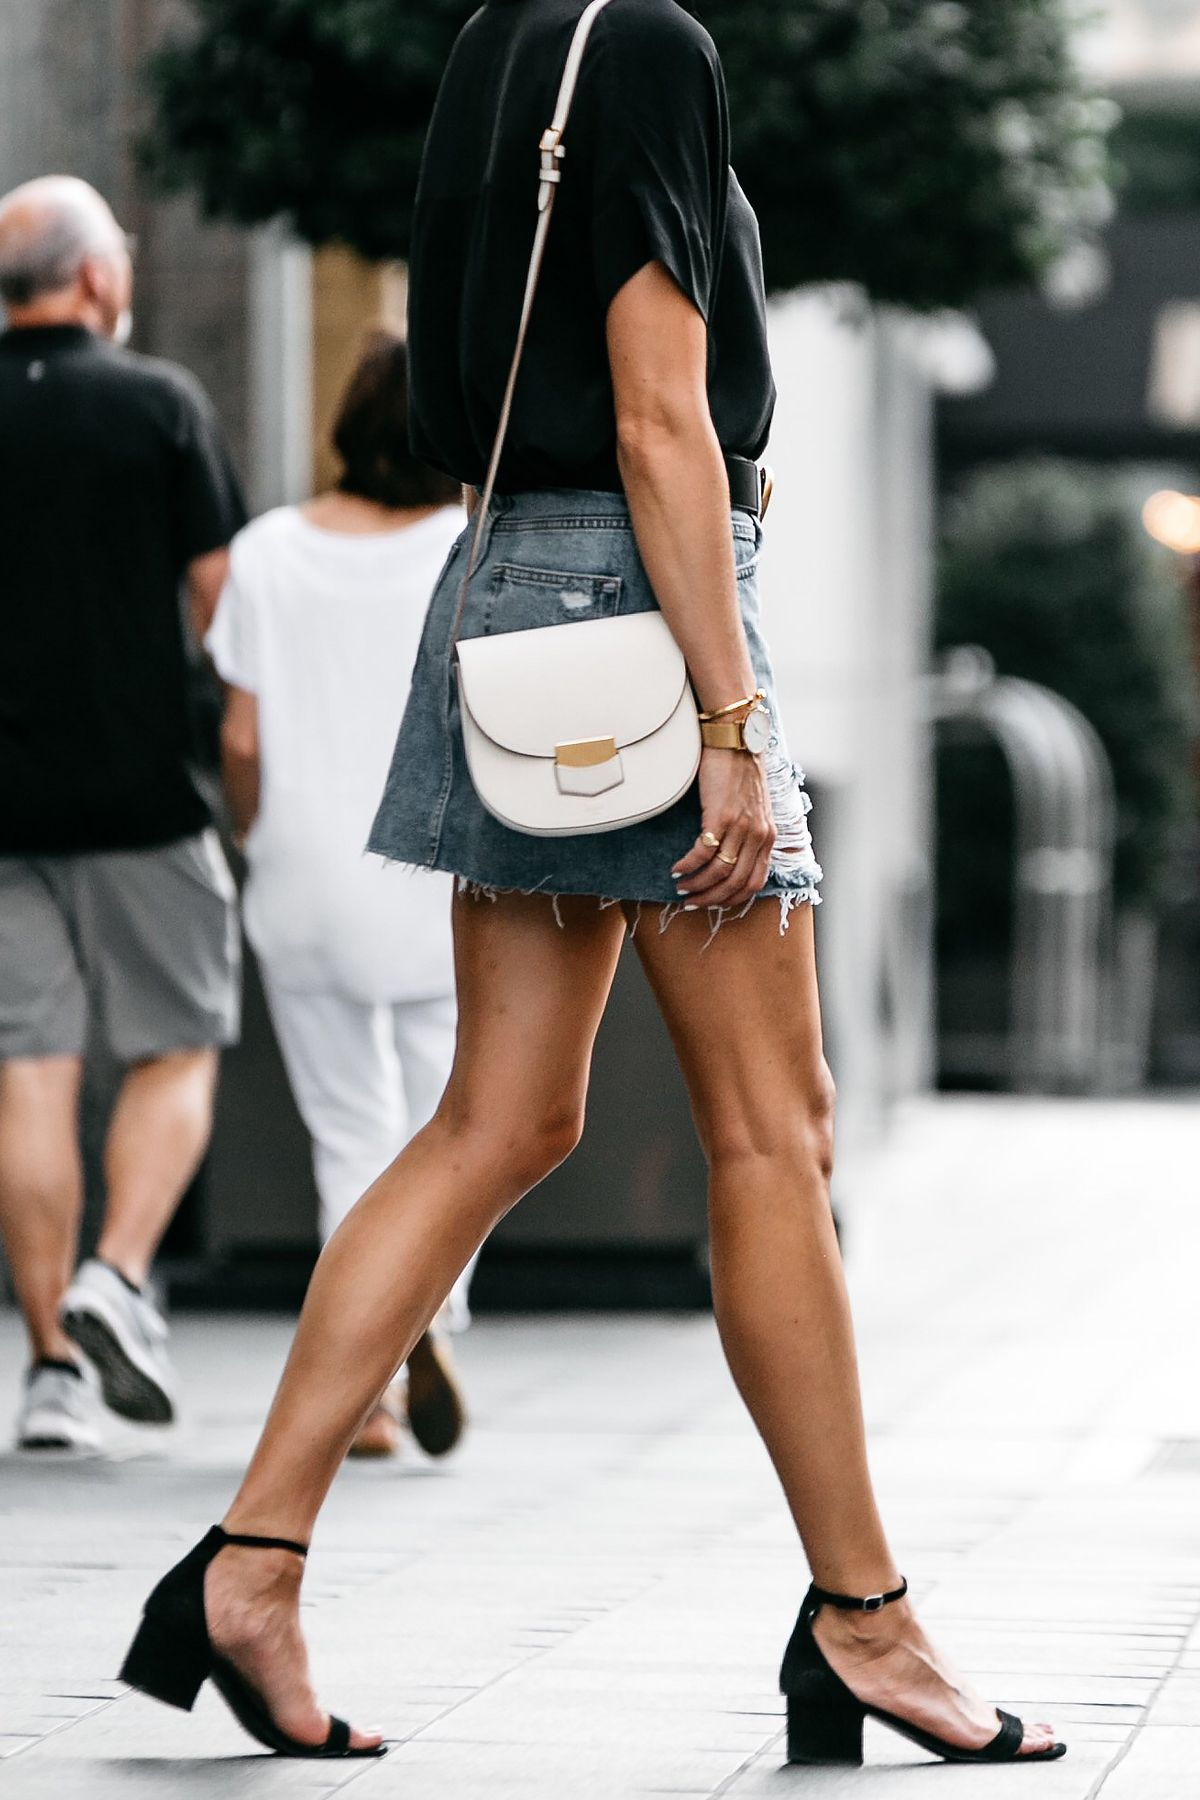 3ee8e4f9732 Everlane Black Short Sleeve Shirt Topshop Ripped Denim Skirt Outfit Gucci  Marmont Belt Celine Trotteur White Handbag Black Ankle Strap Sandals  Fashion ...